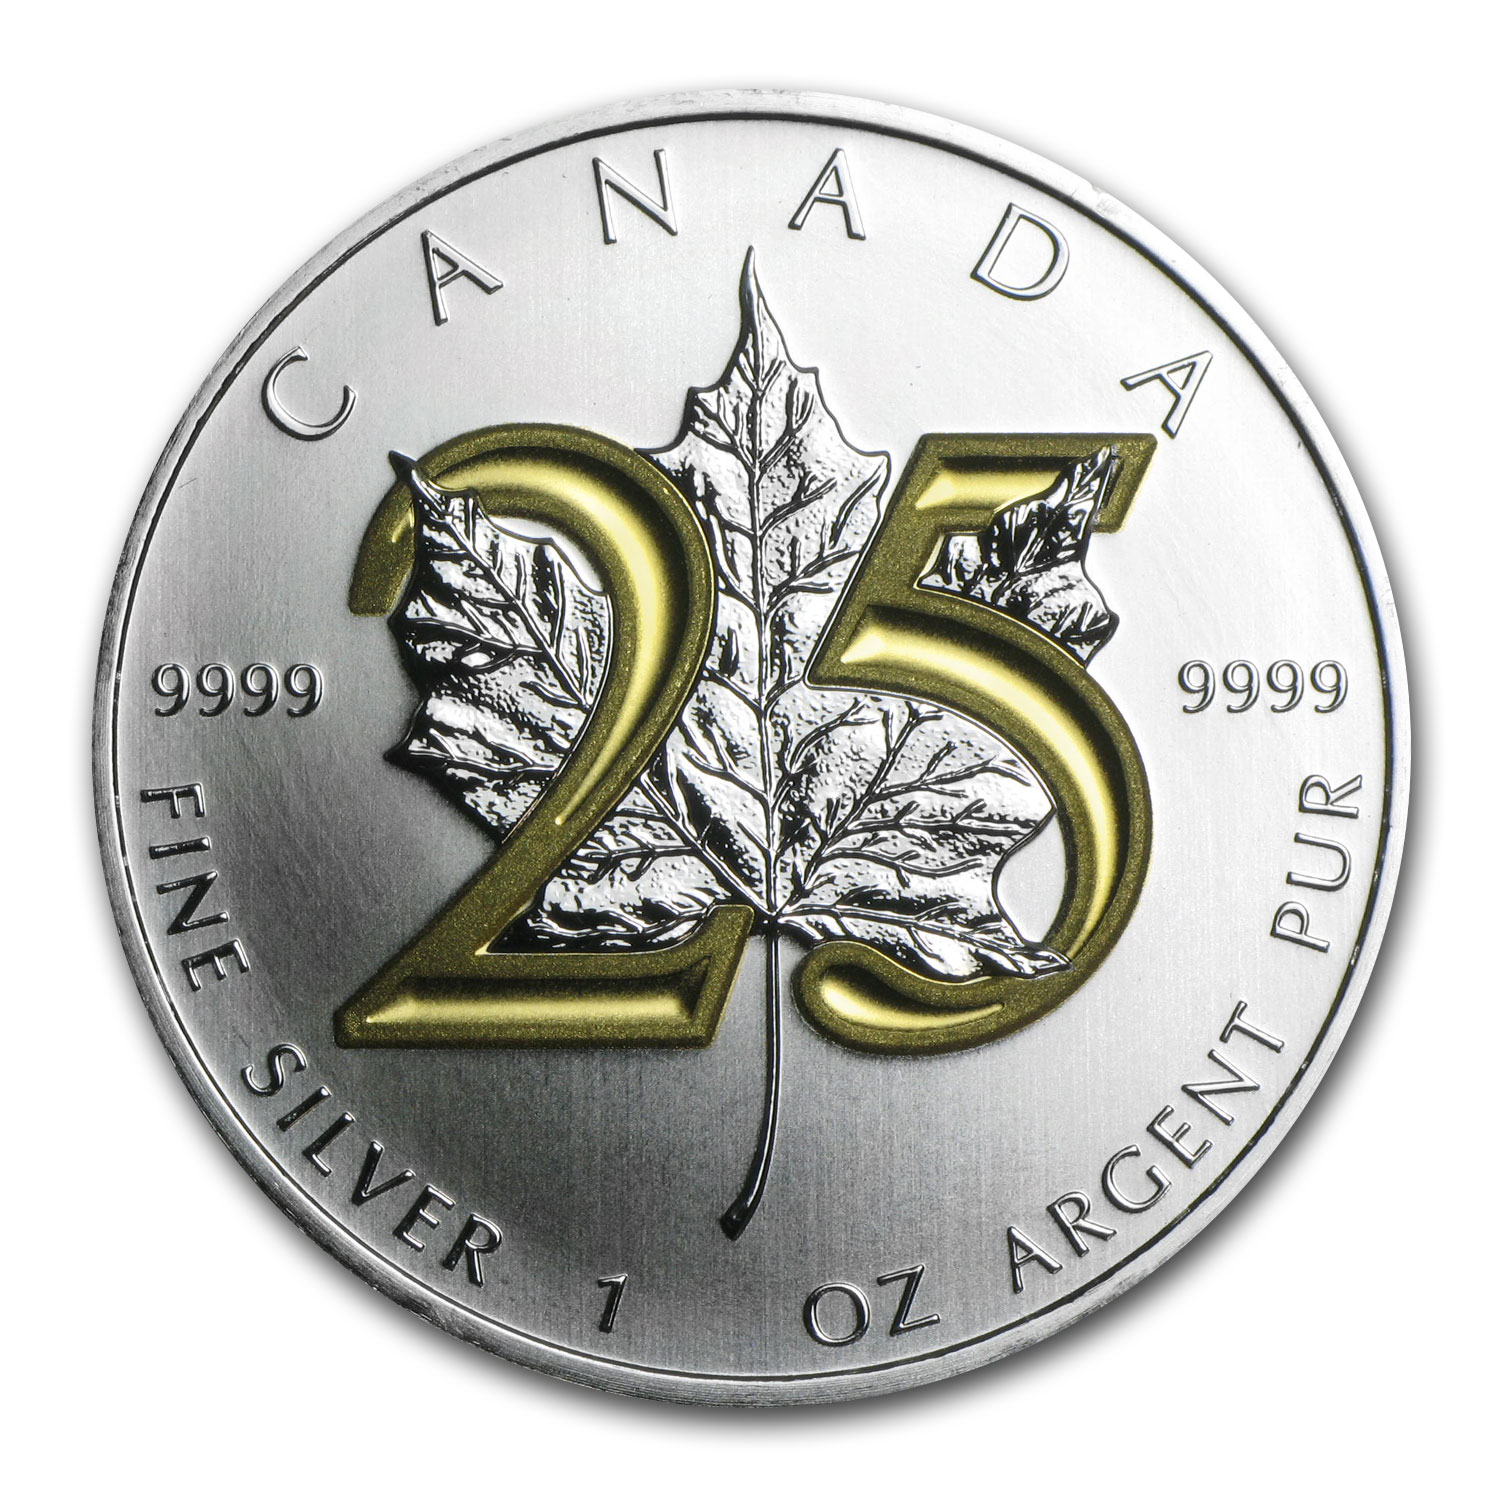 2013 Canada 1 oz Silver Maple Leaf BU (25th Anniv, Gilded)